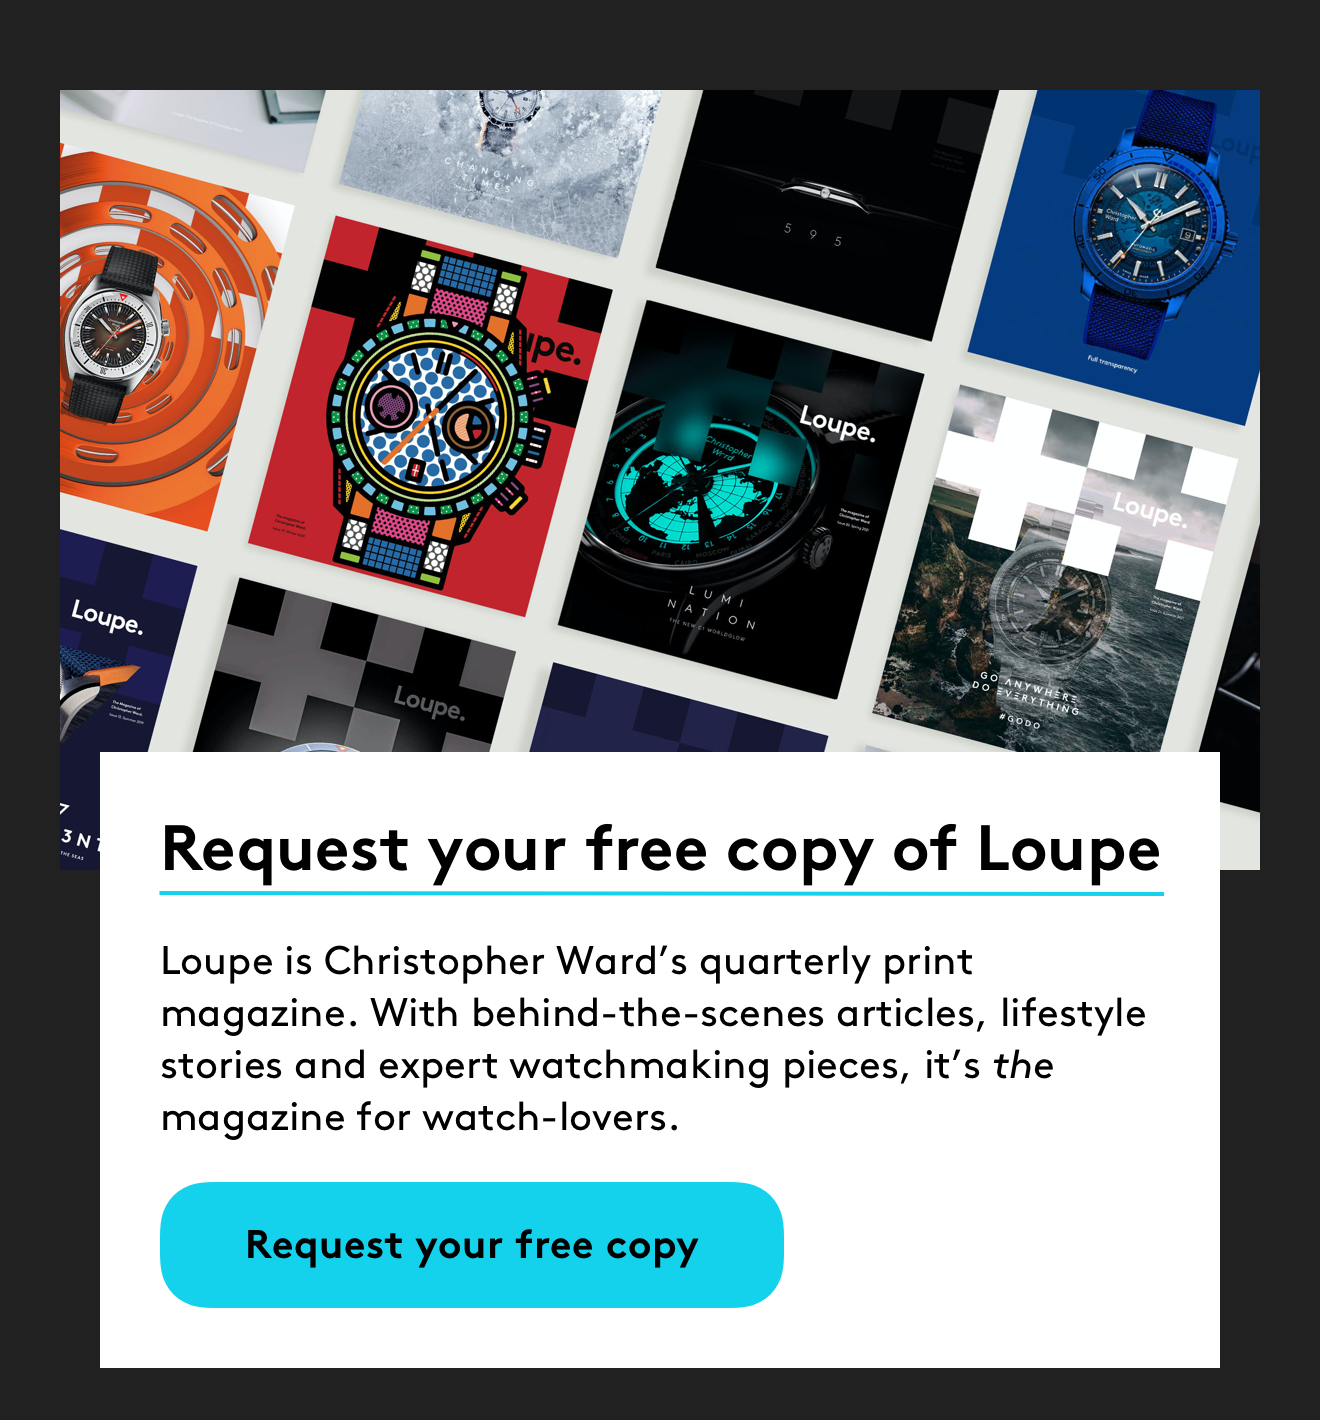 Request your free copy of Loupe